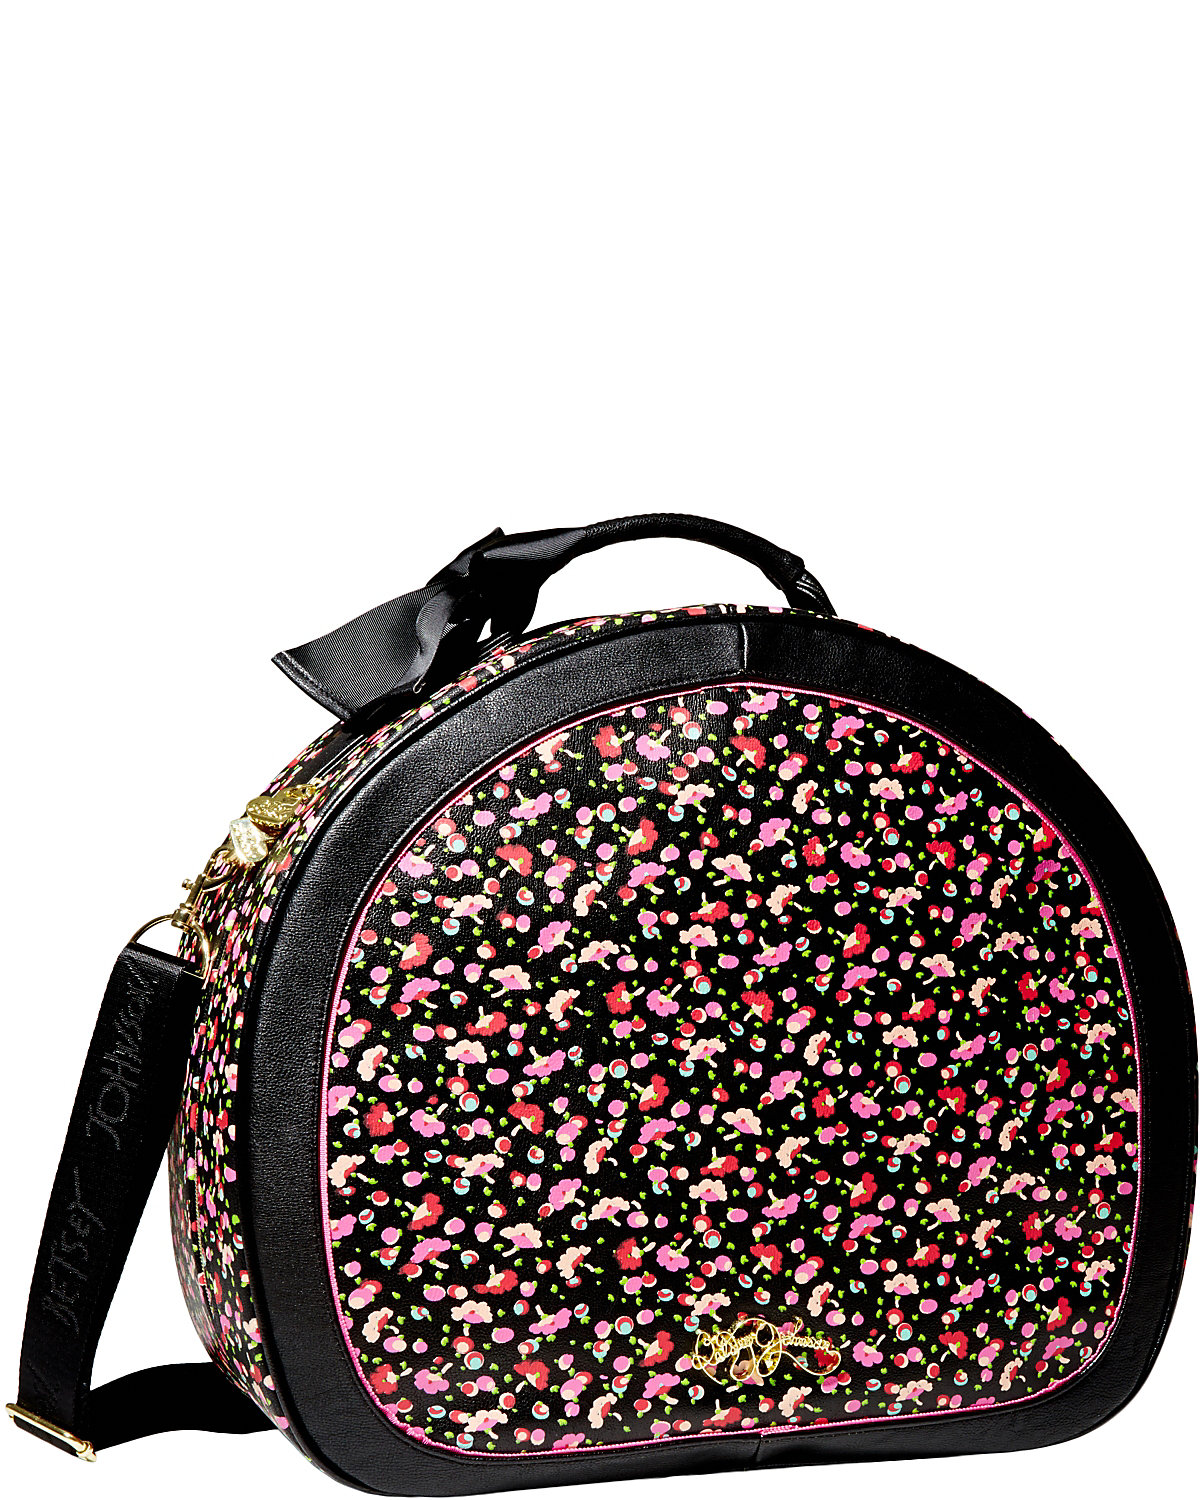 Latest Designer bags and sunglasses for women by Betsey Johnson 2014-2015 (14)